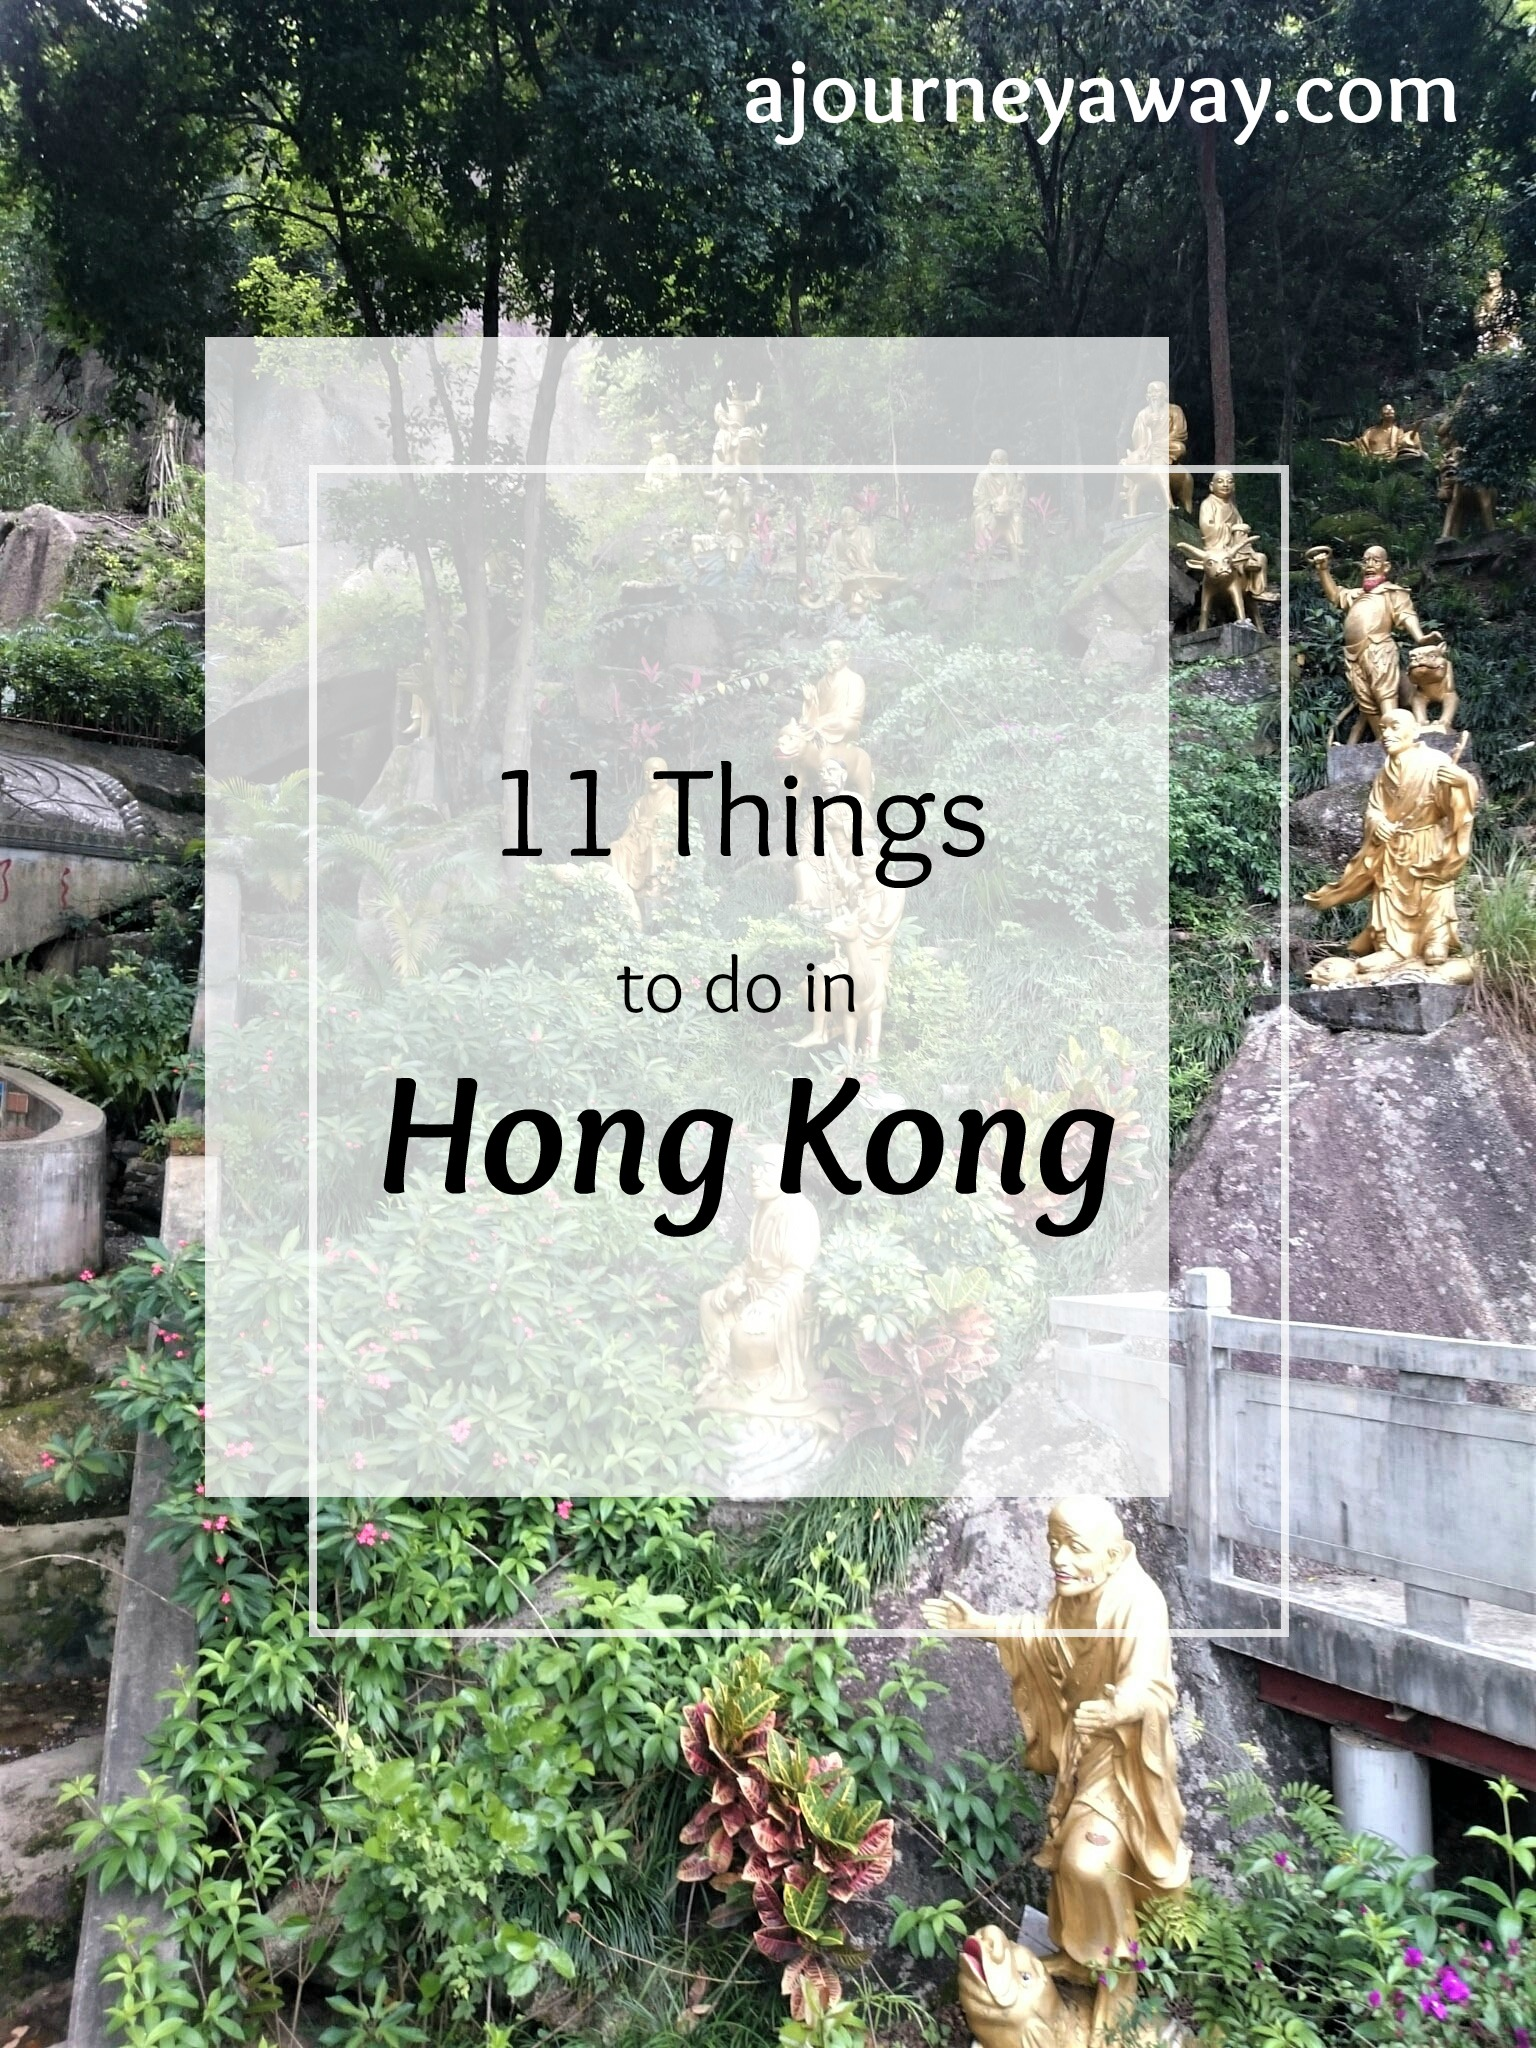 11 things to do in Hong Kong